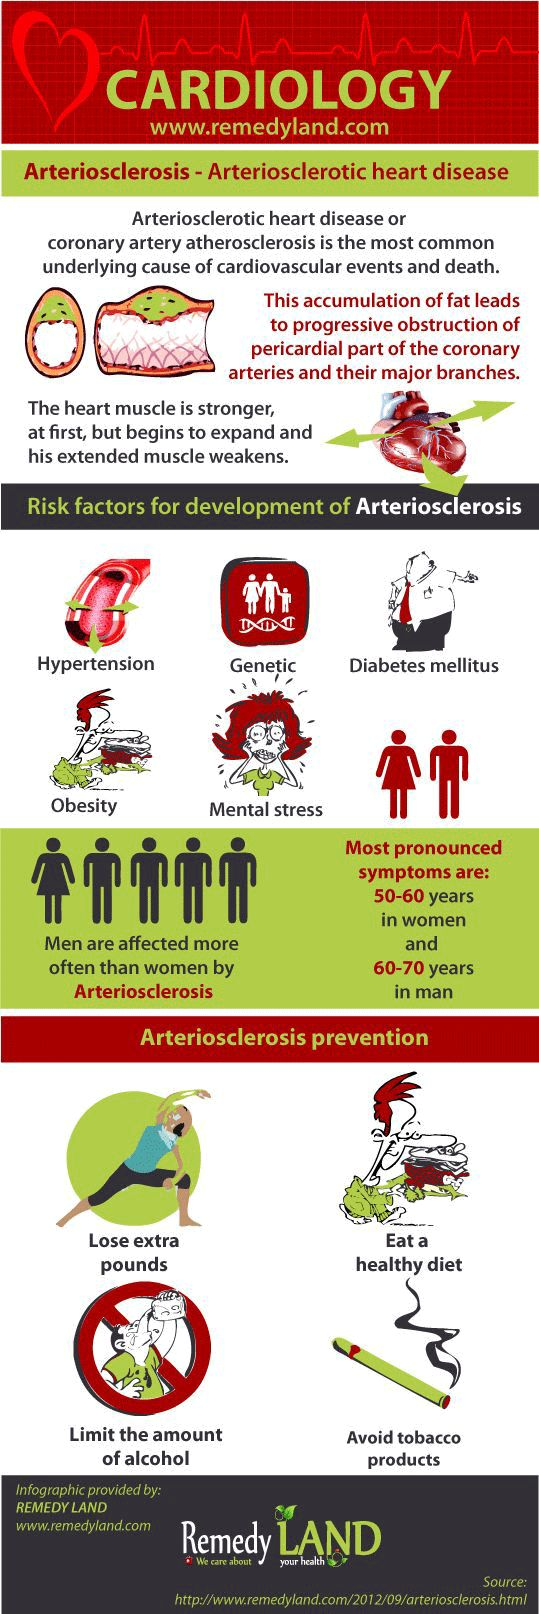 Pin about Arteriosclerosis from Remedy land, visit website, thanks #arteriosclerosis #cardiology